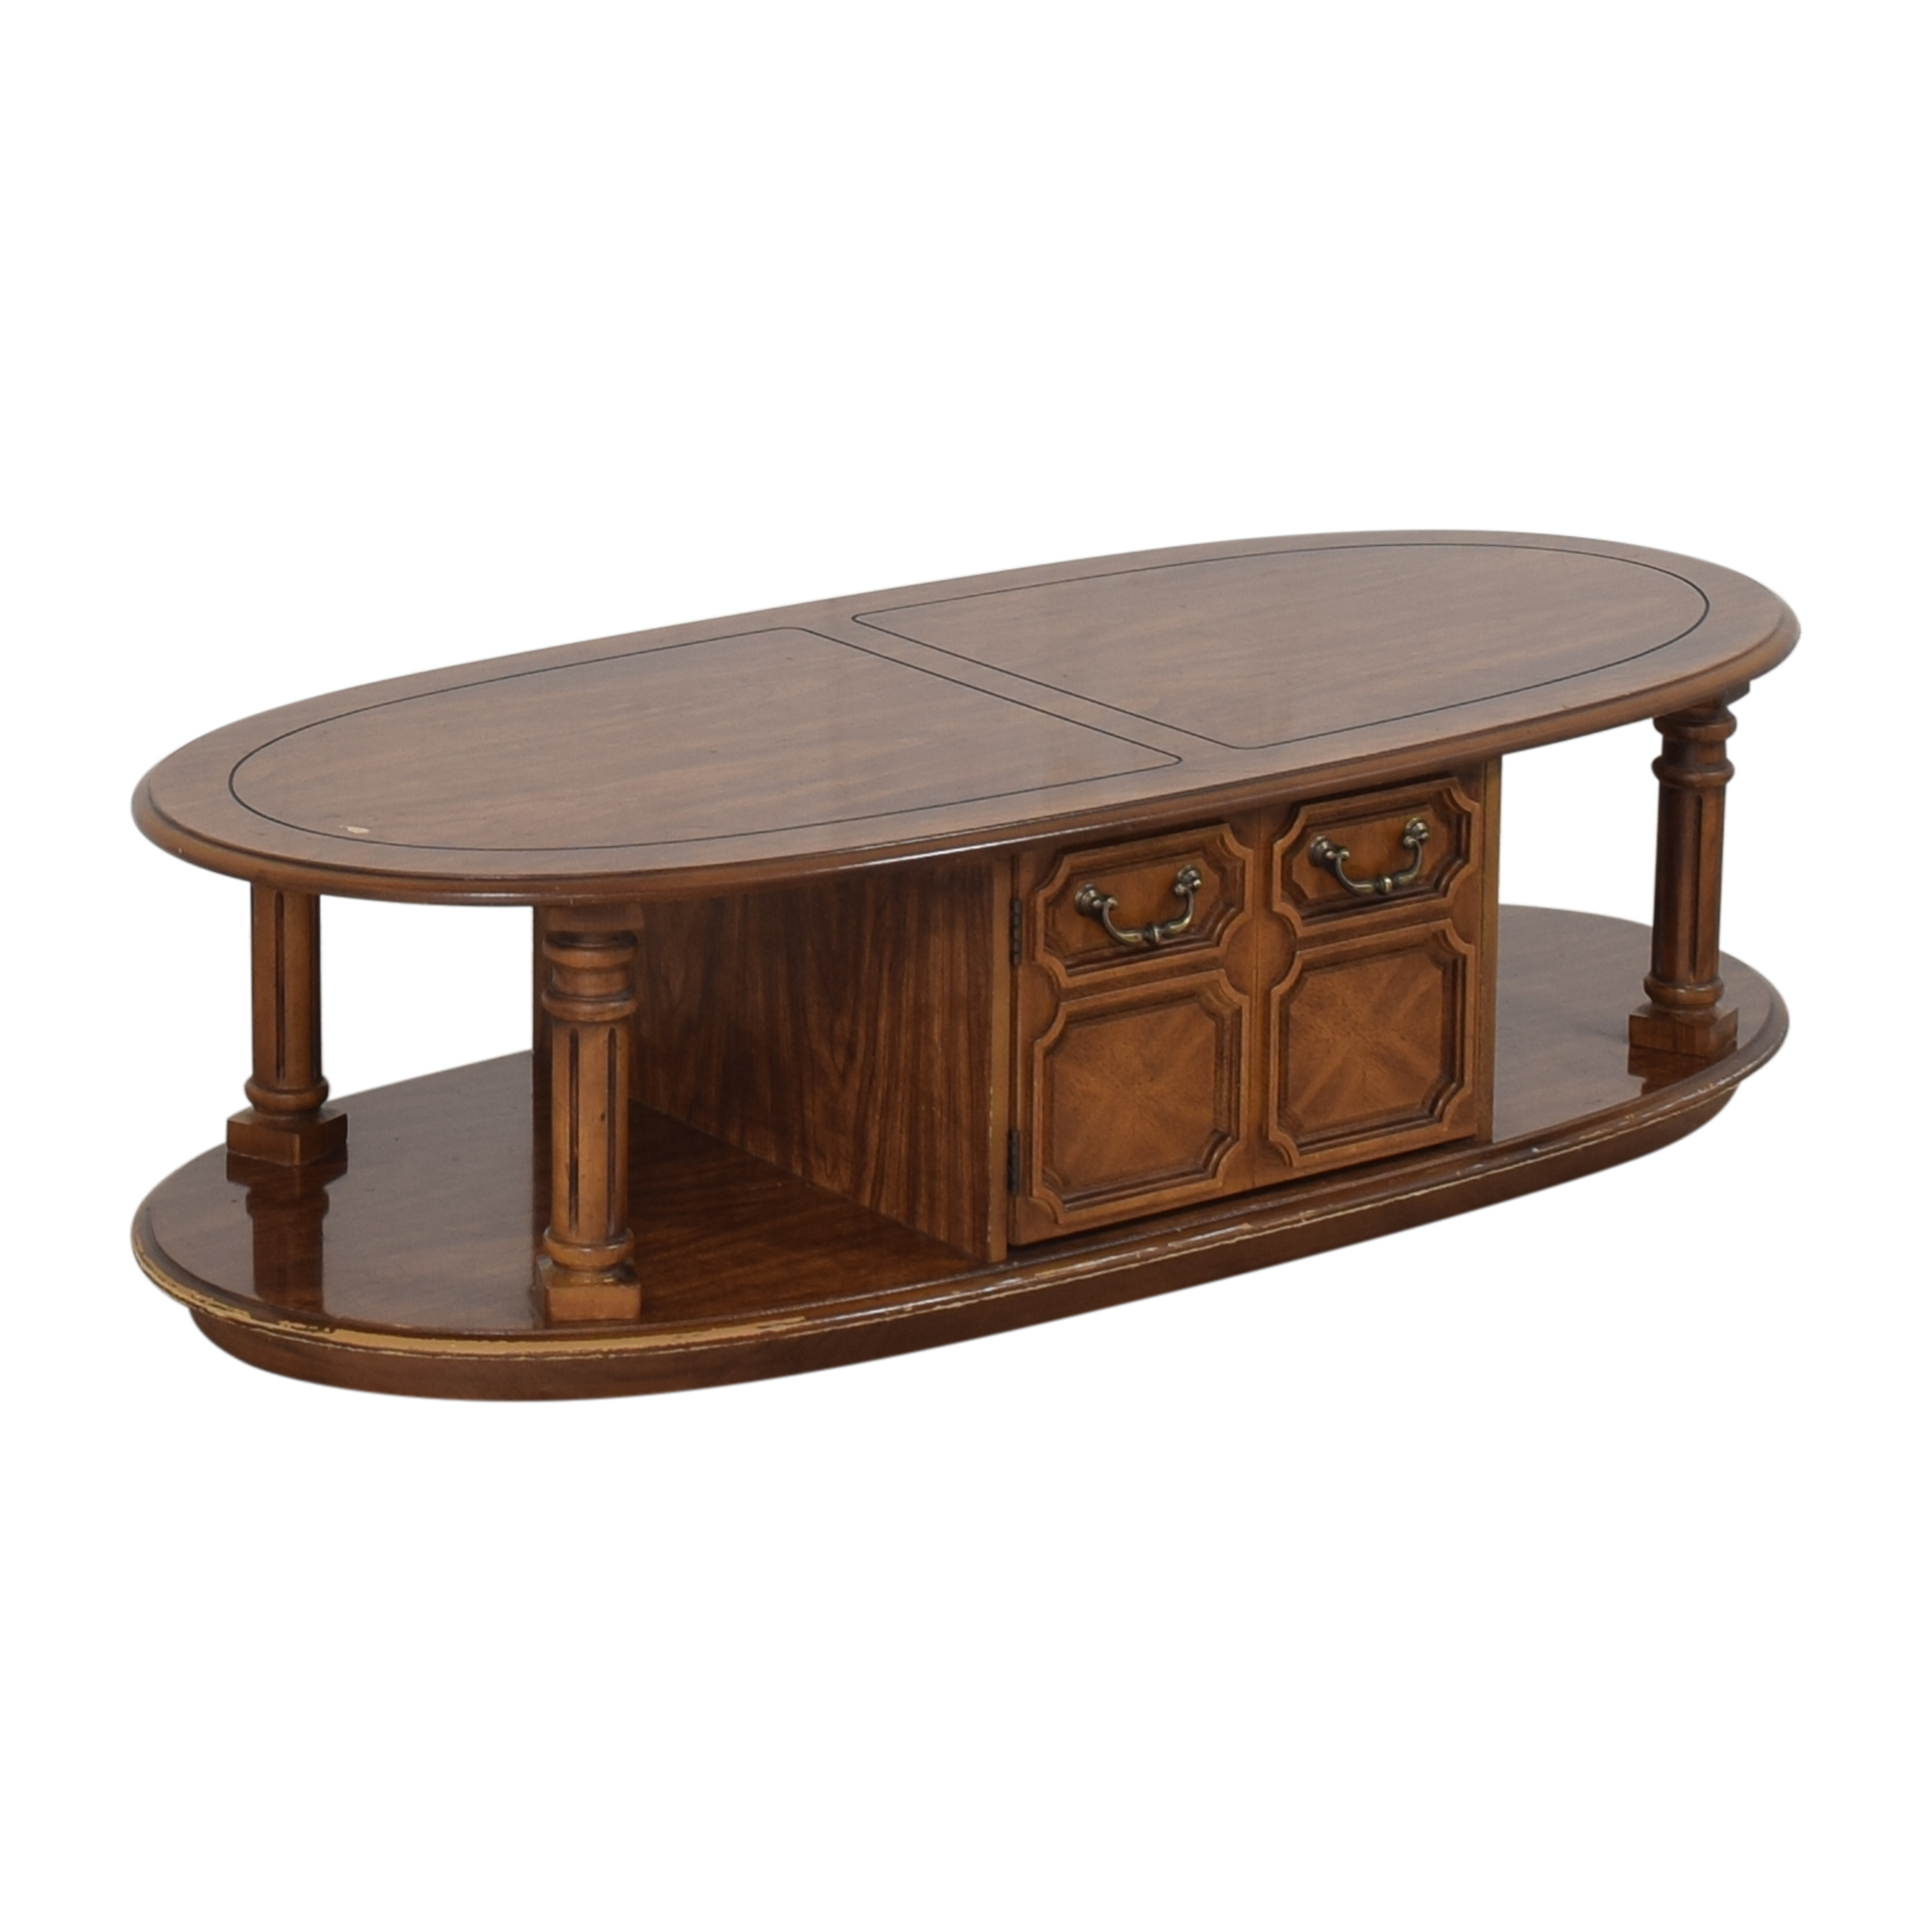 Oval Coffee Table brown